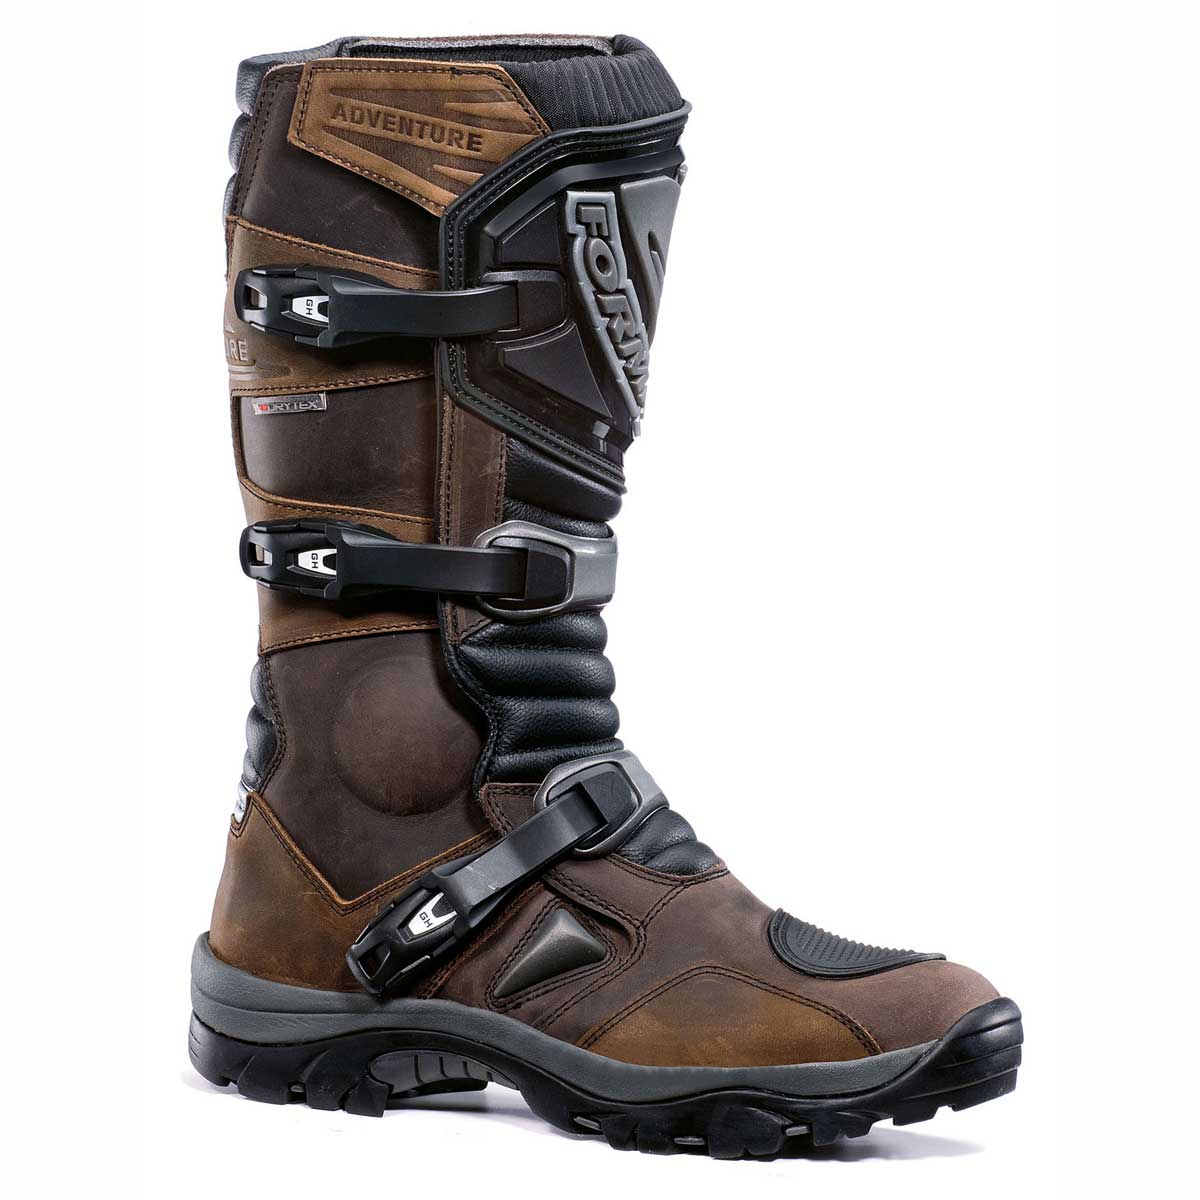 10 of the best adventure boots | Visordown